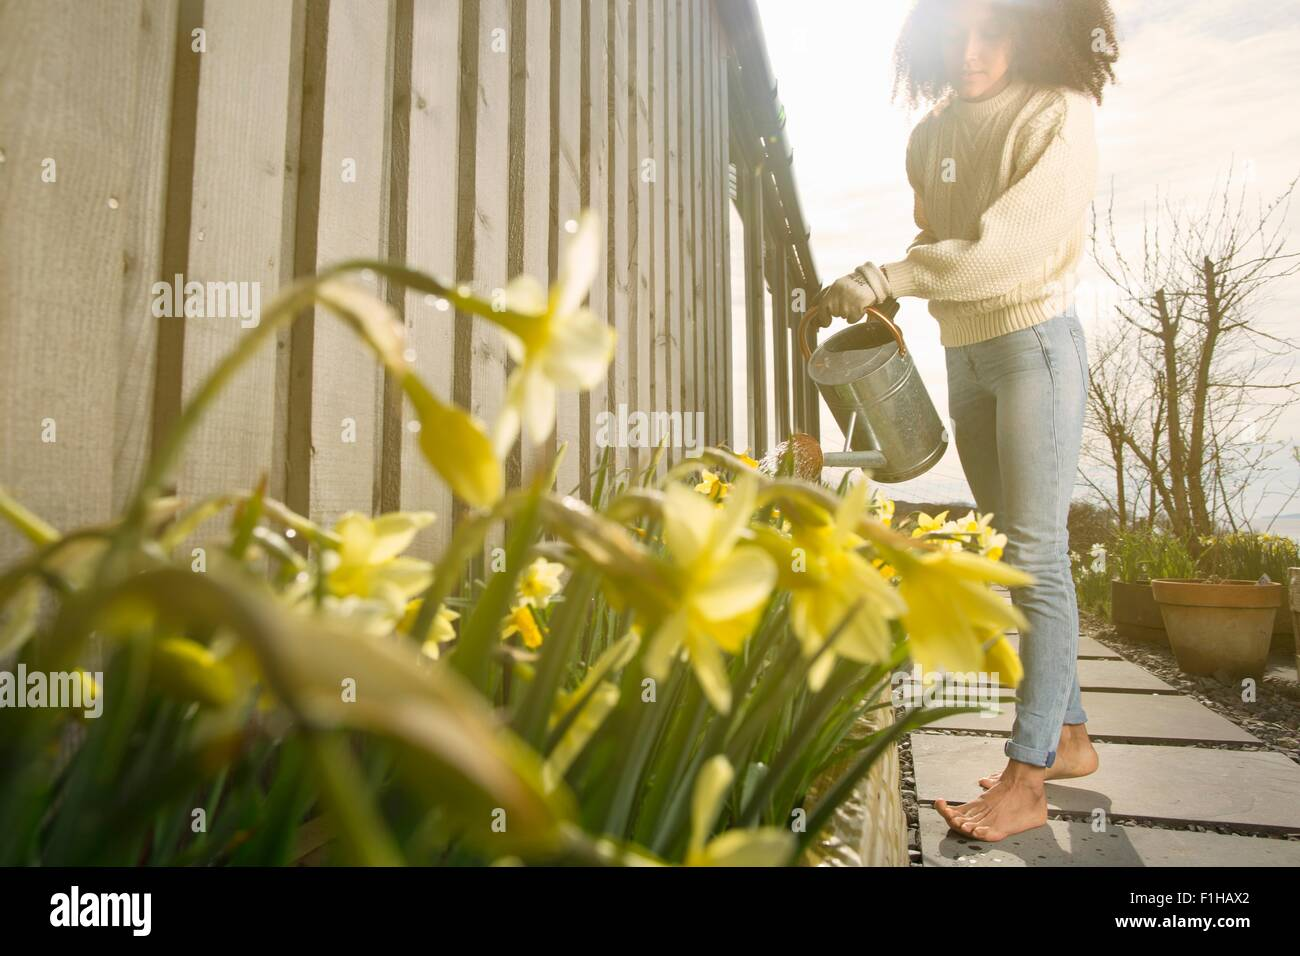 Mid adult woman watering flowers - Stock Image